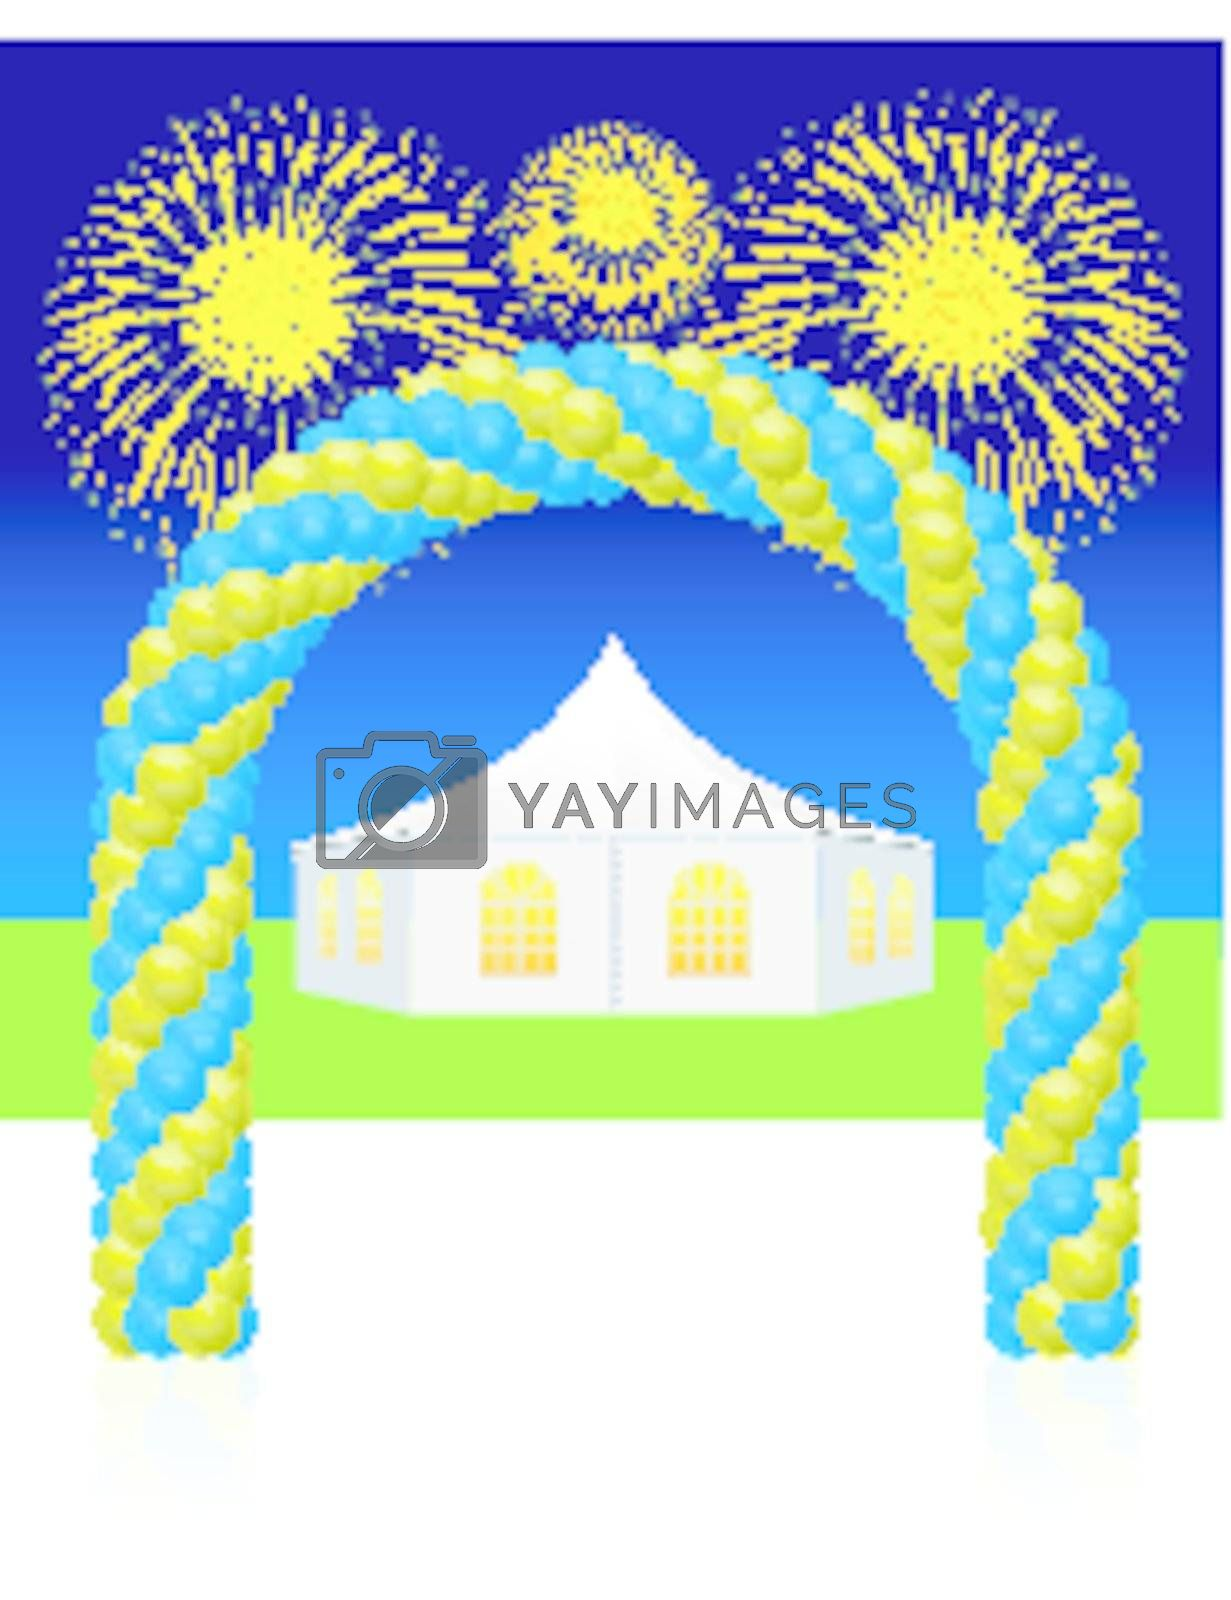 White wedding or entertainment tent with balloon and fireworks